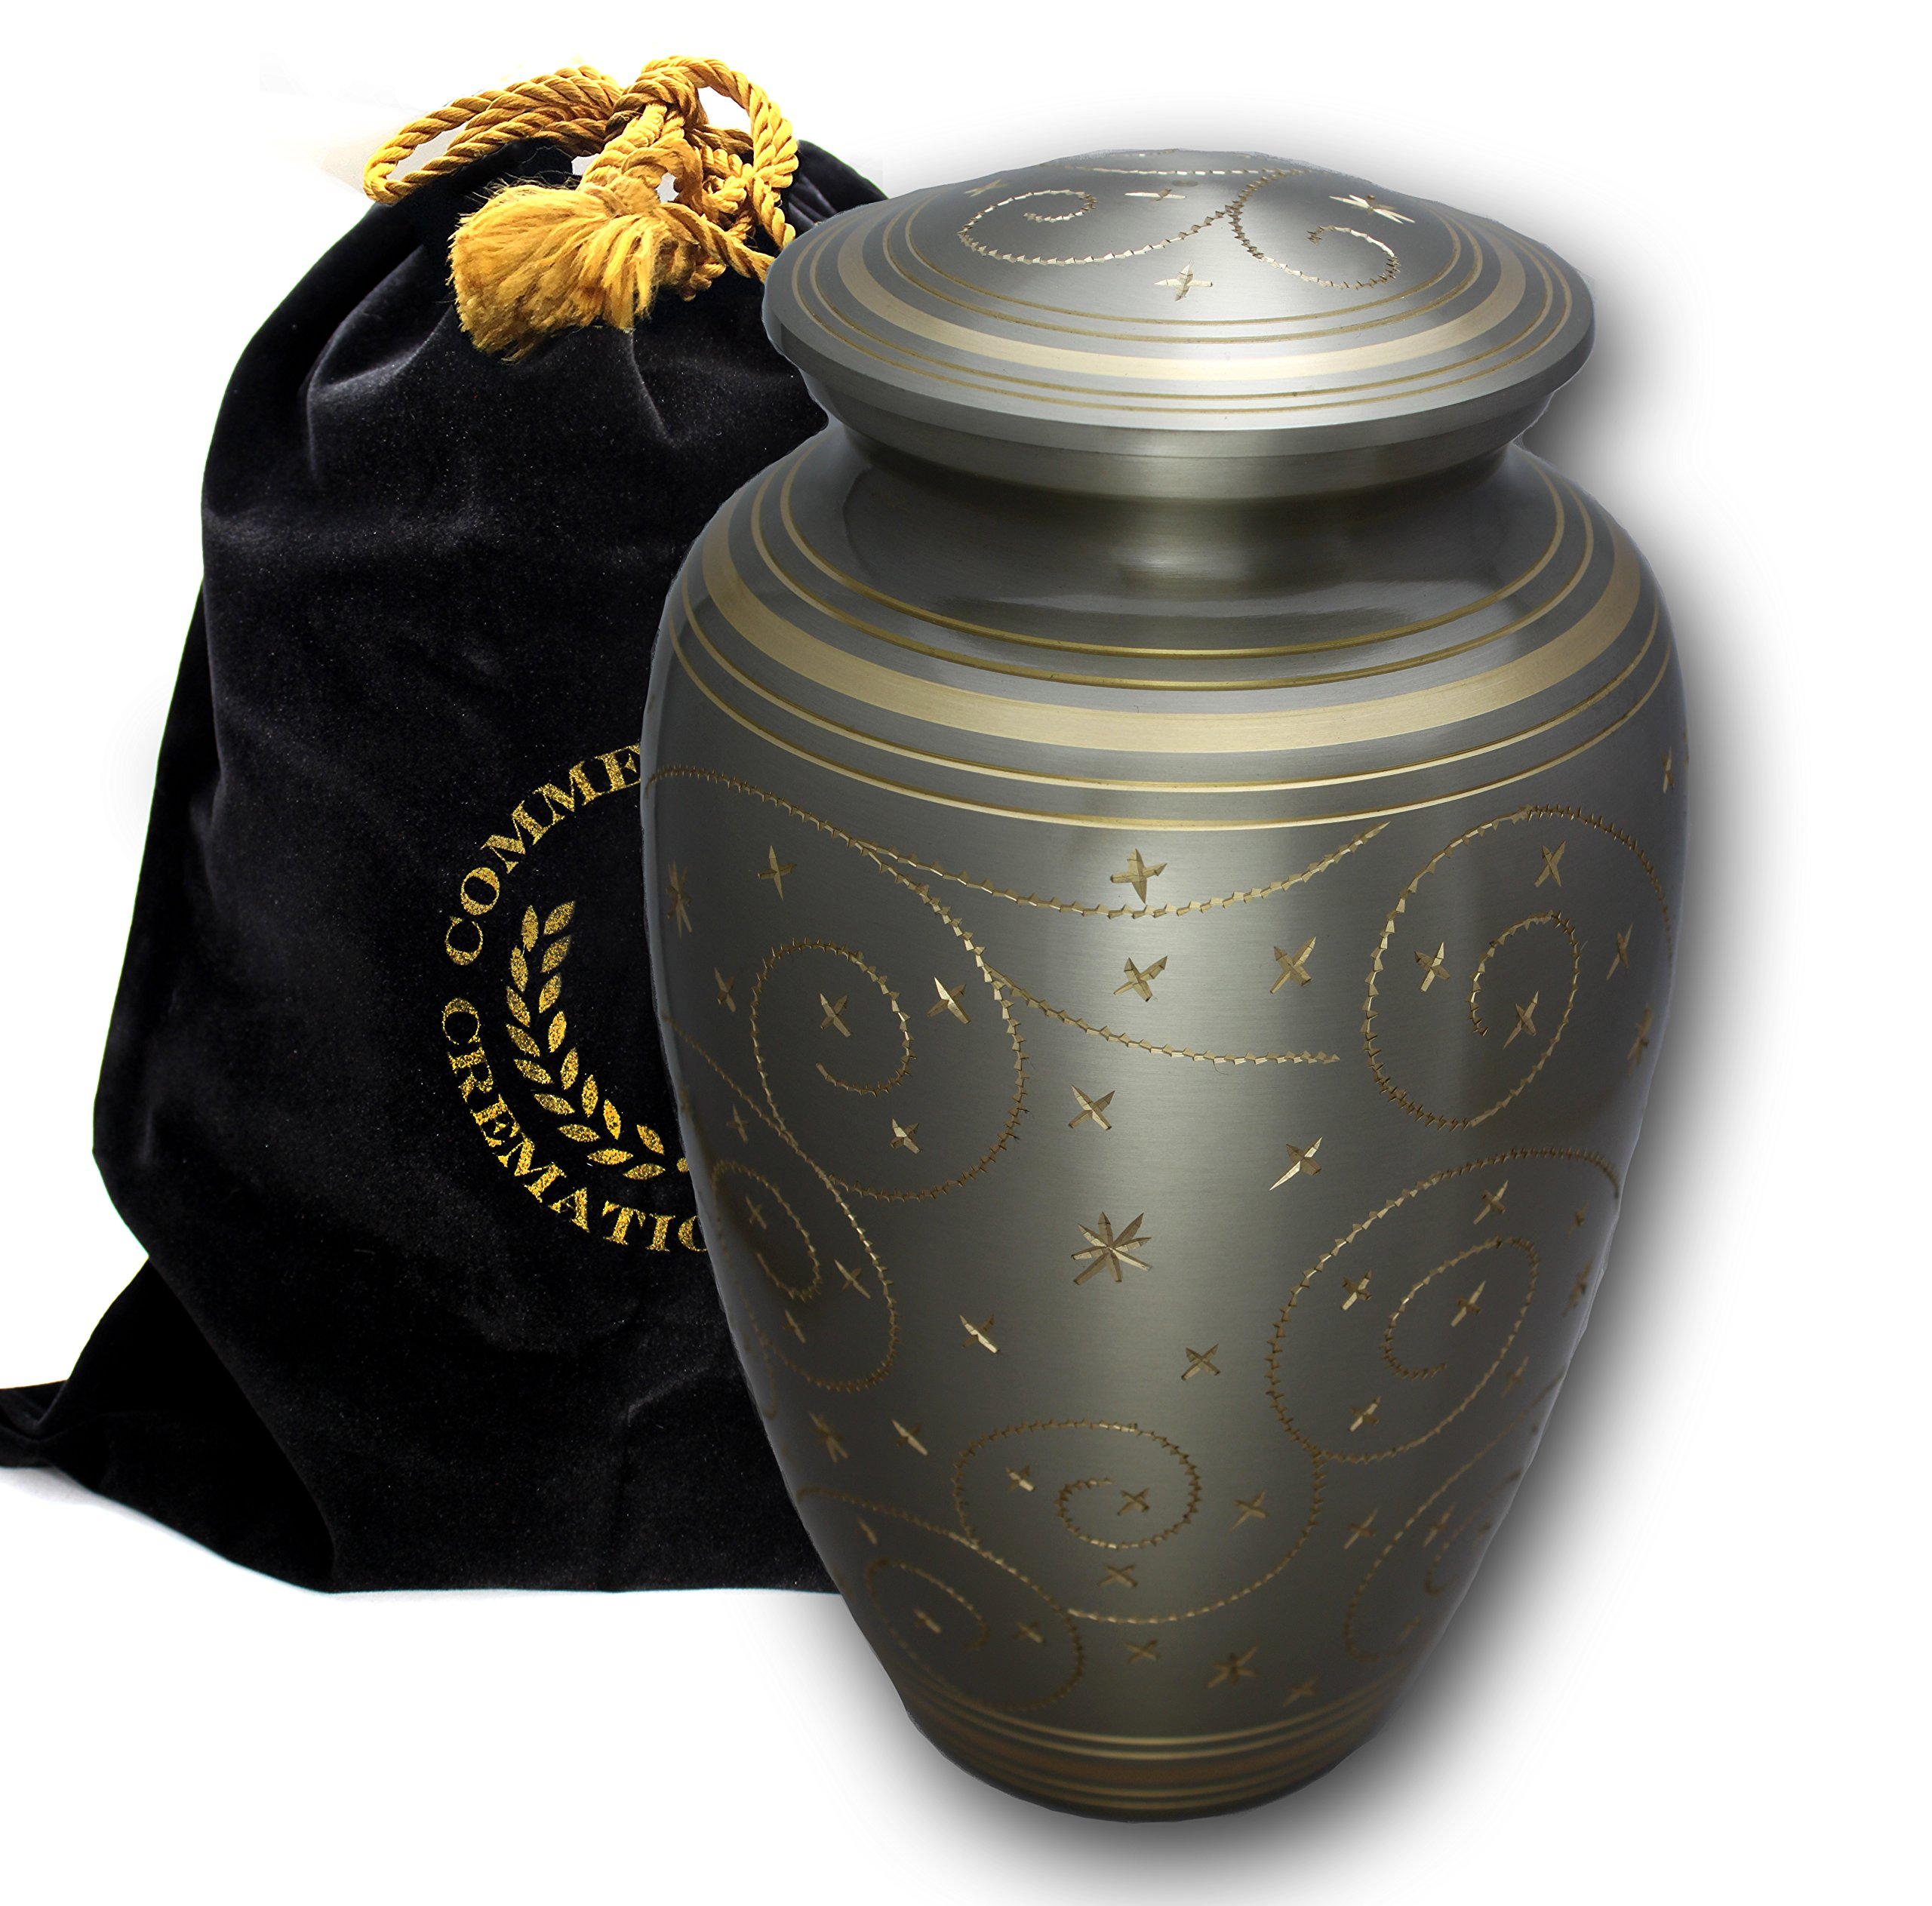 Star Light Brass Metal Funeral Cremation Urn for Human Ashes (Large) by Commemorative Cremation Urns (Image #5)